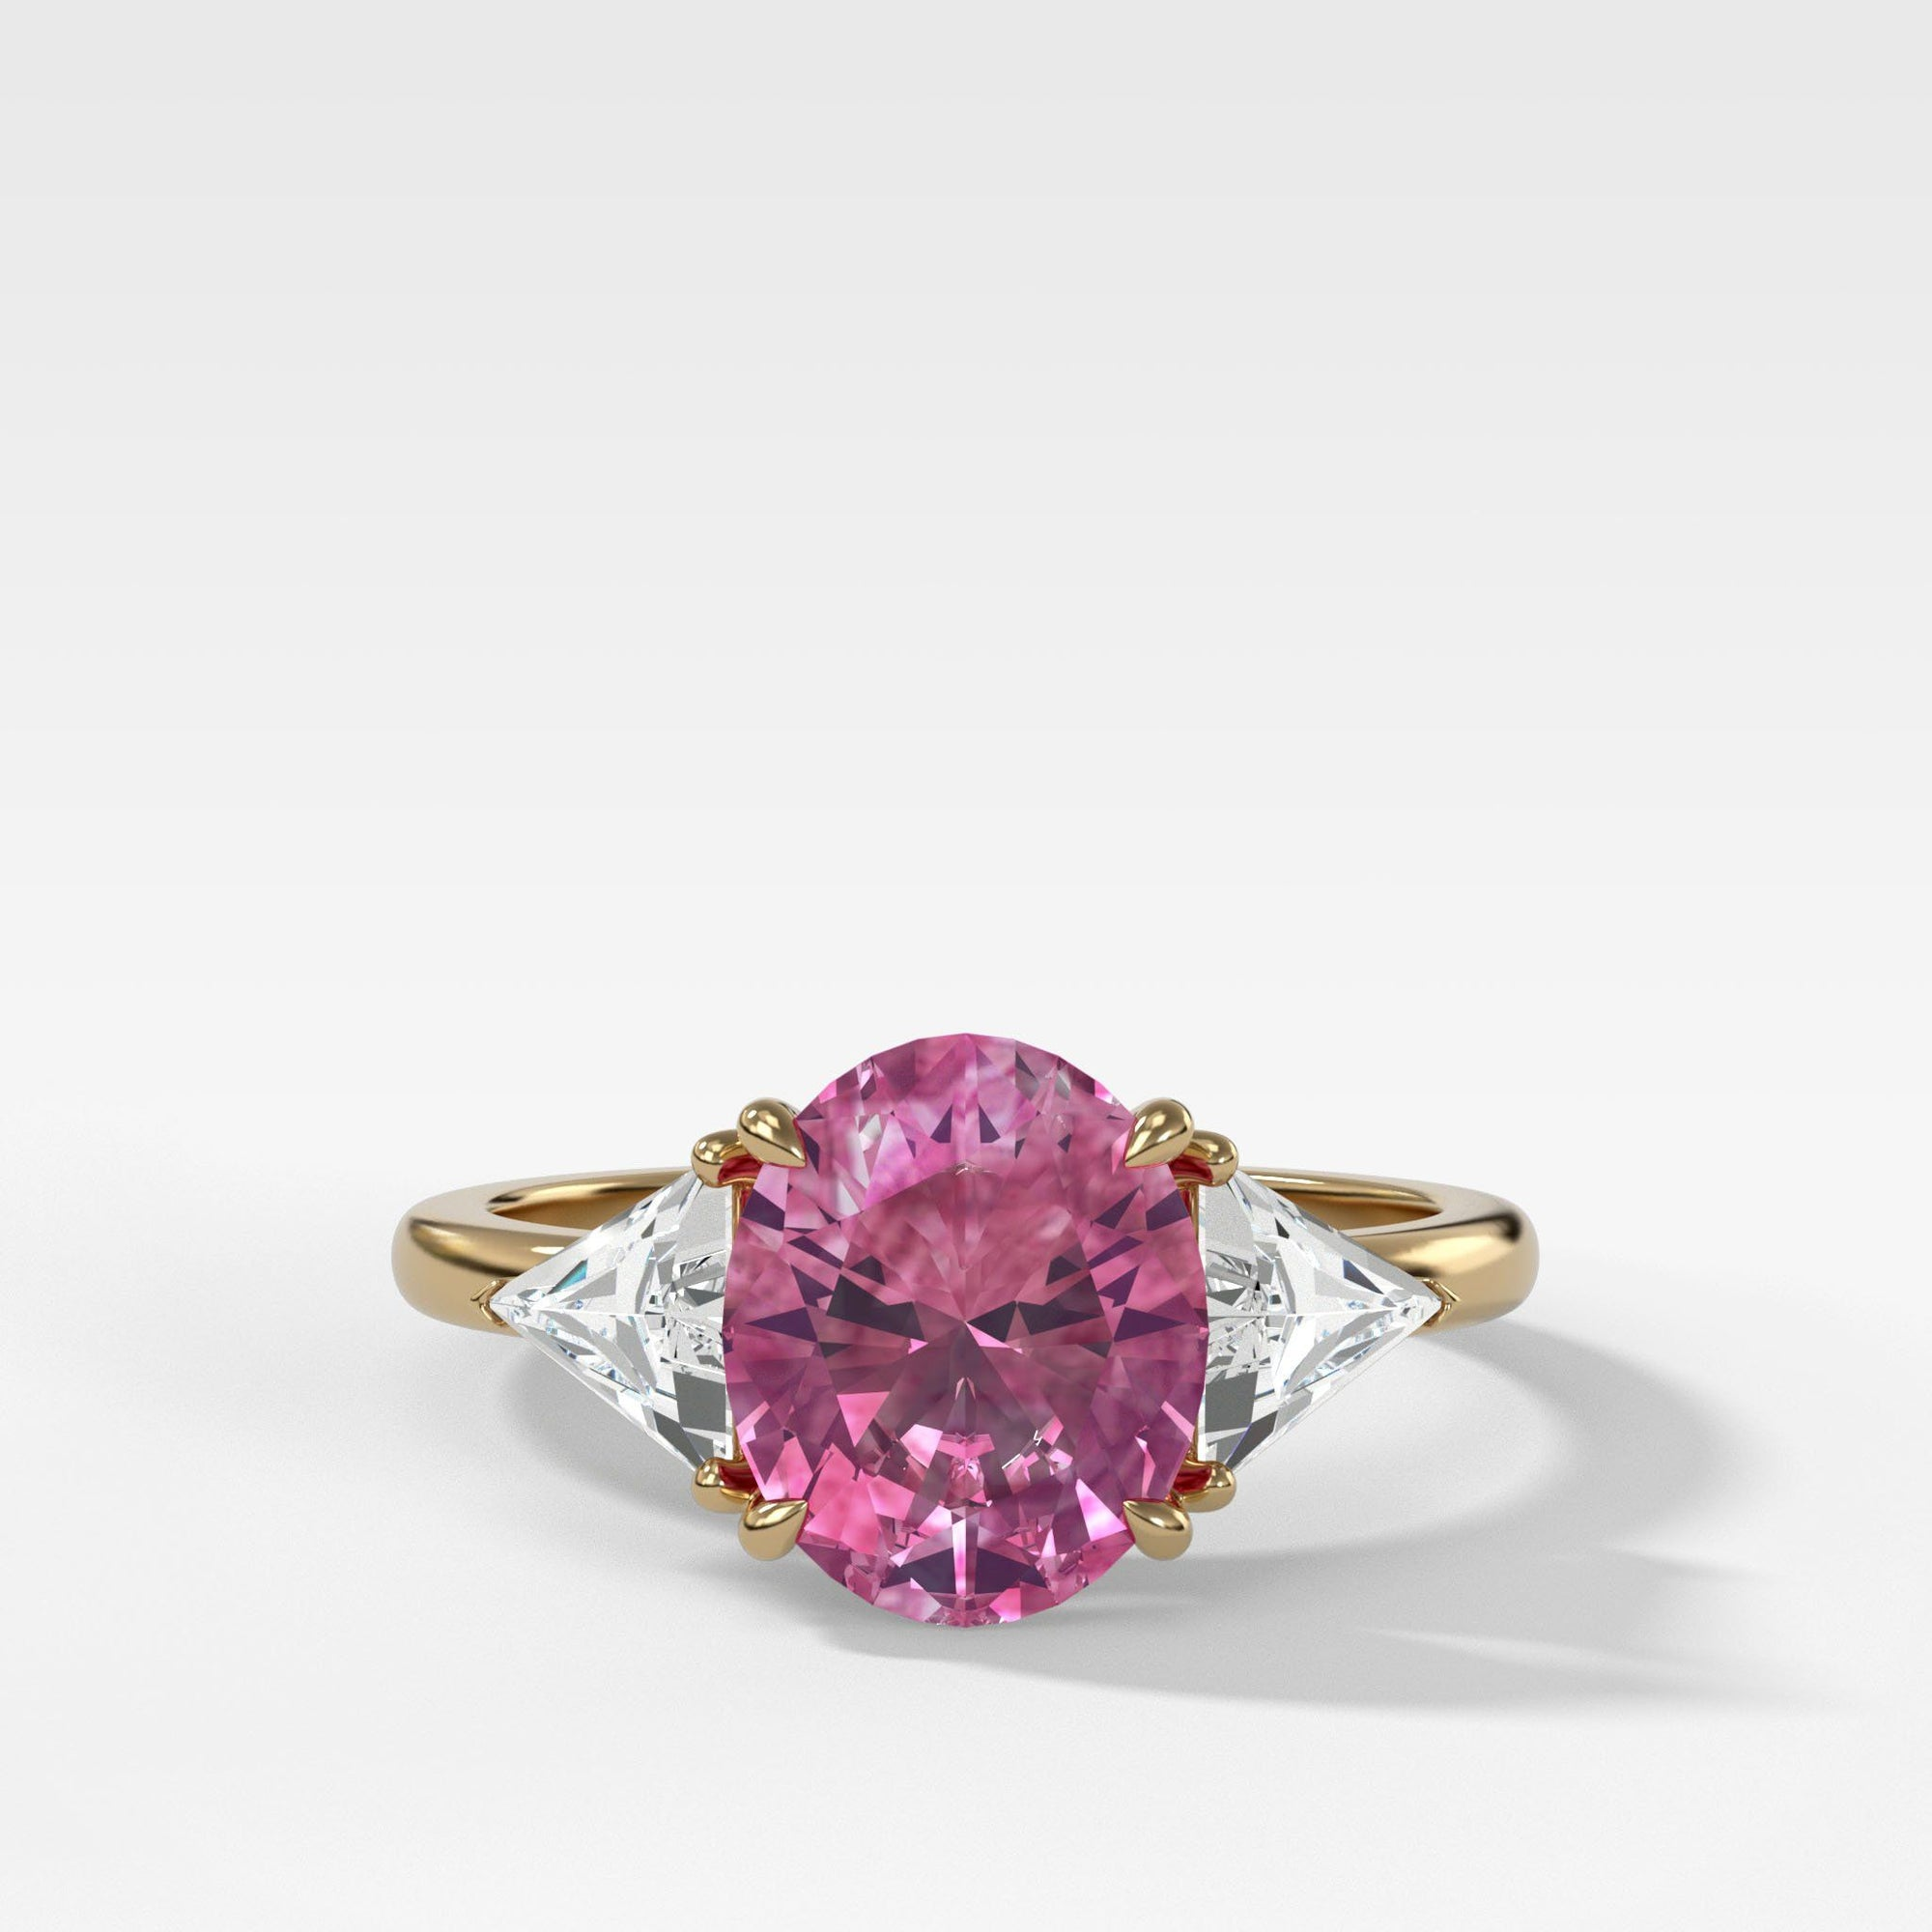 Pink Sapphire Three Stone Ring with Trillion Diamond Sides in Yellow Gold by Good Stone